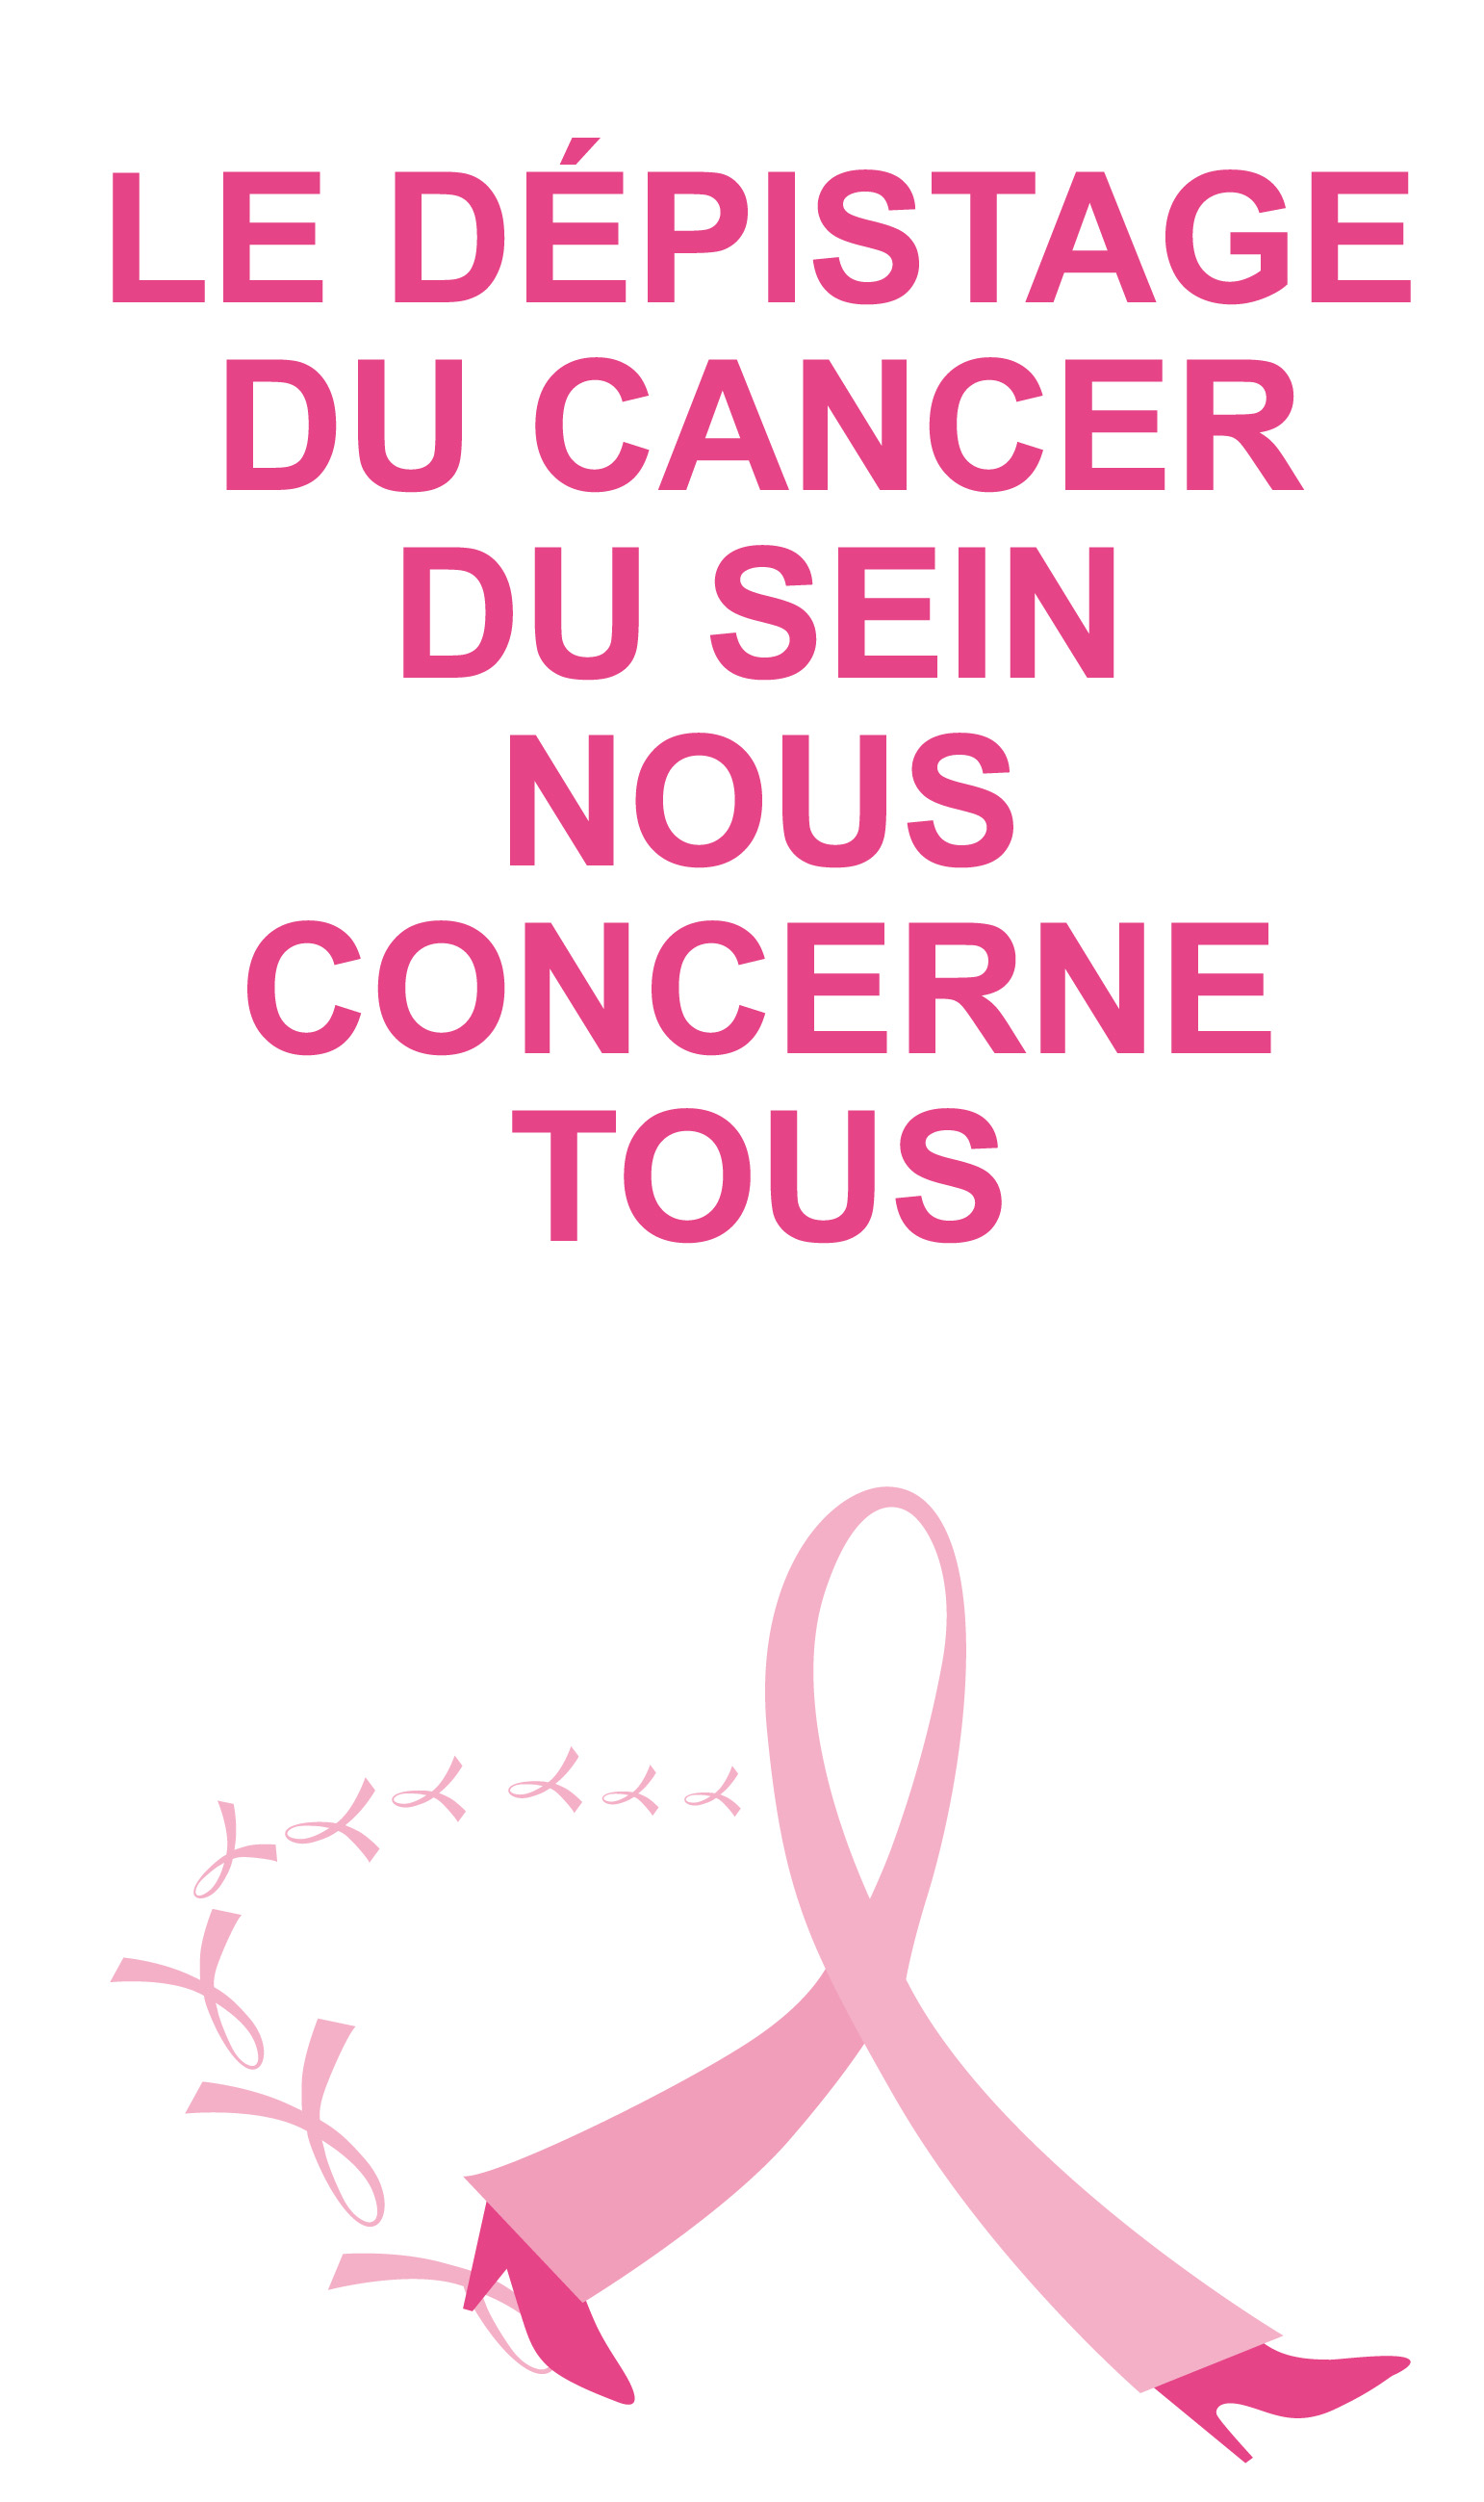 cancer inflammatoire,adenocarcinome canalaire